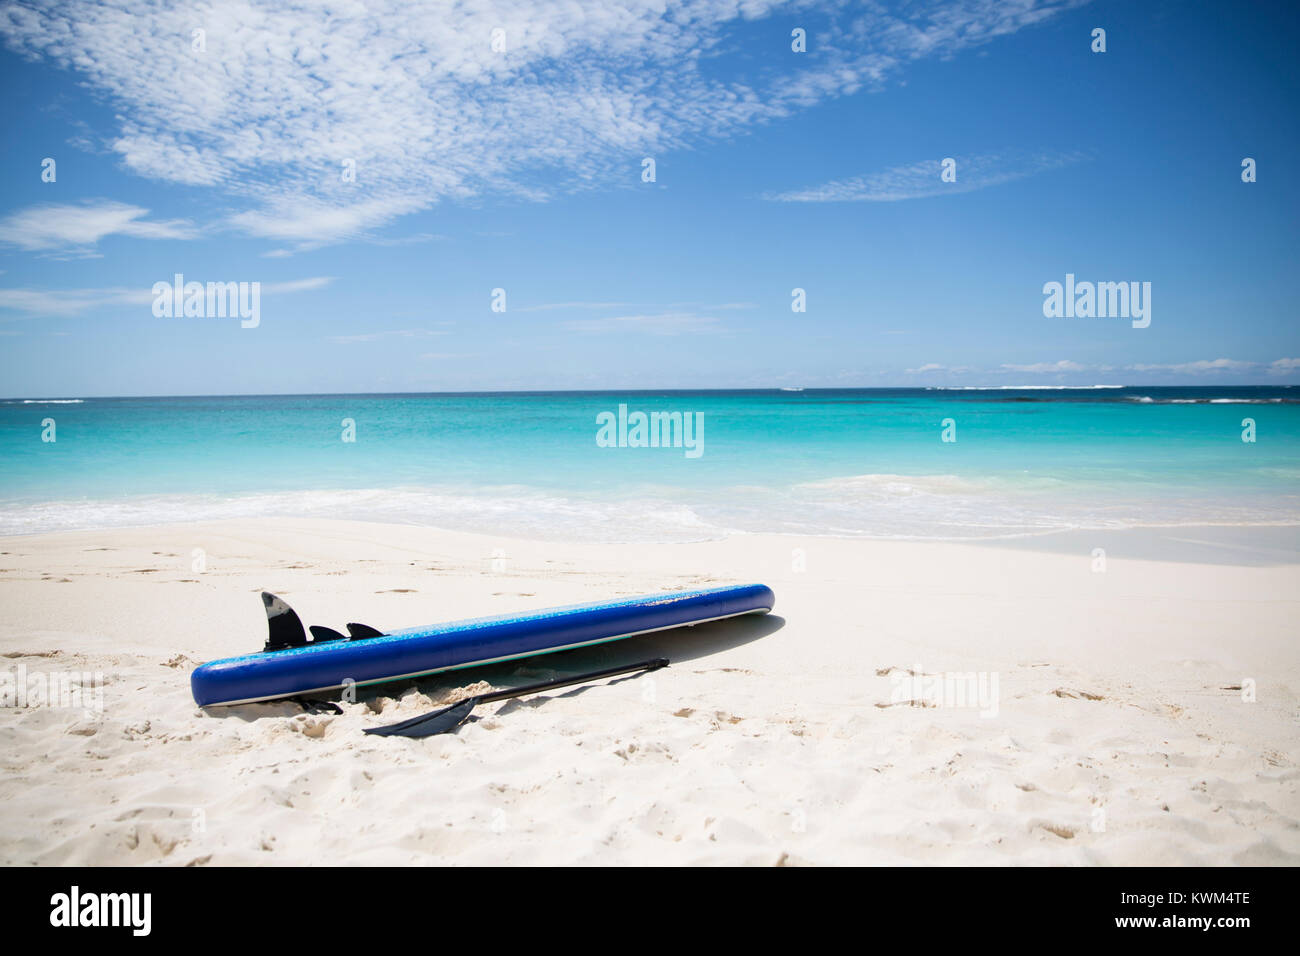 Paddleboard and oar at beach against sea - Stock Image